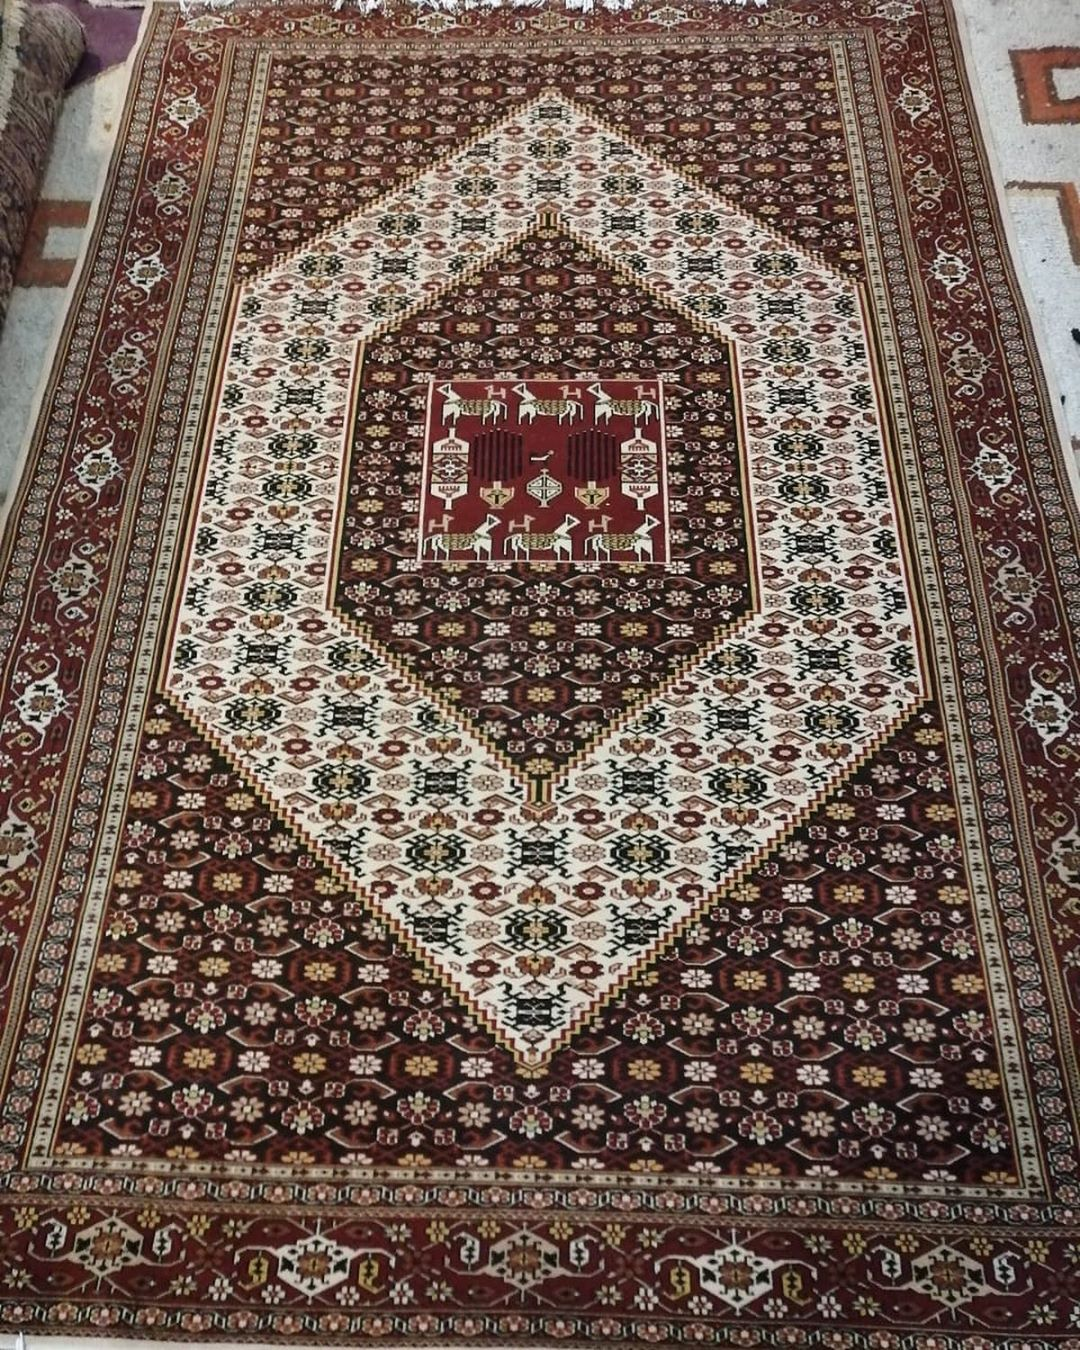 Originality And Classy Designs Are Here For You Hand Made Carpet From Pakistan High Knotted Natural Dyes Size 6 4 Dm For Pr Viscose Rug Rugs On Carpet Rugs